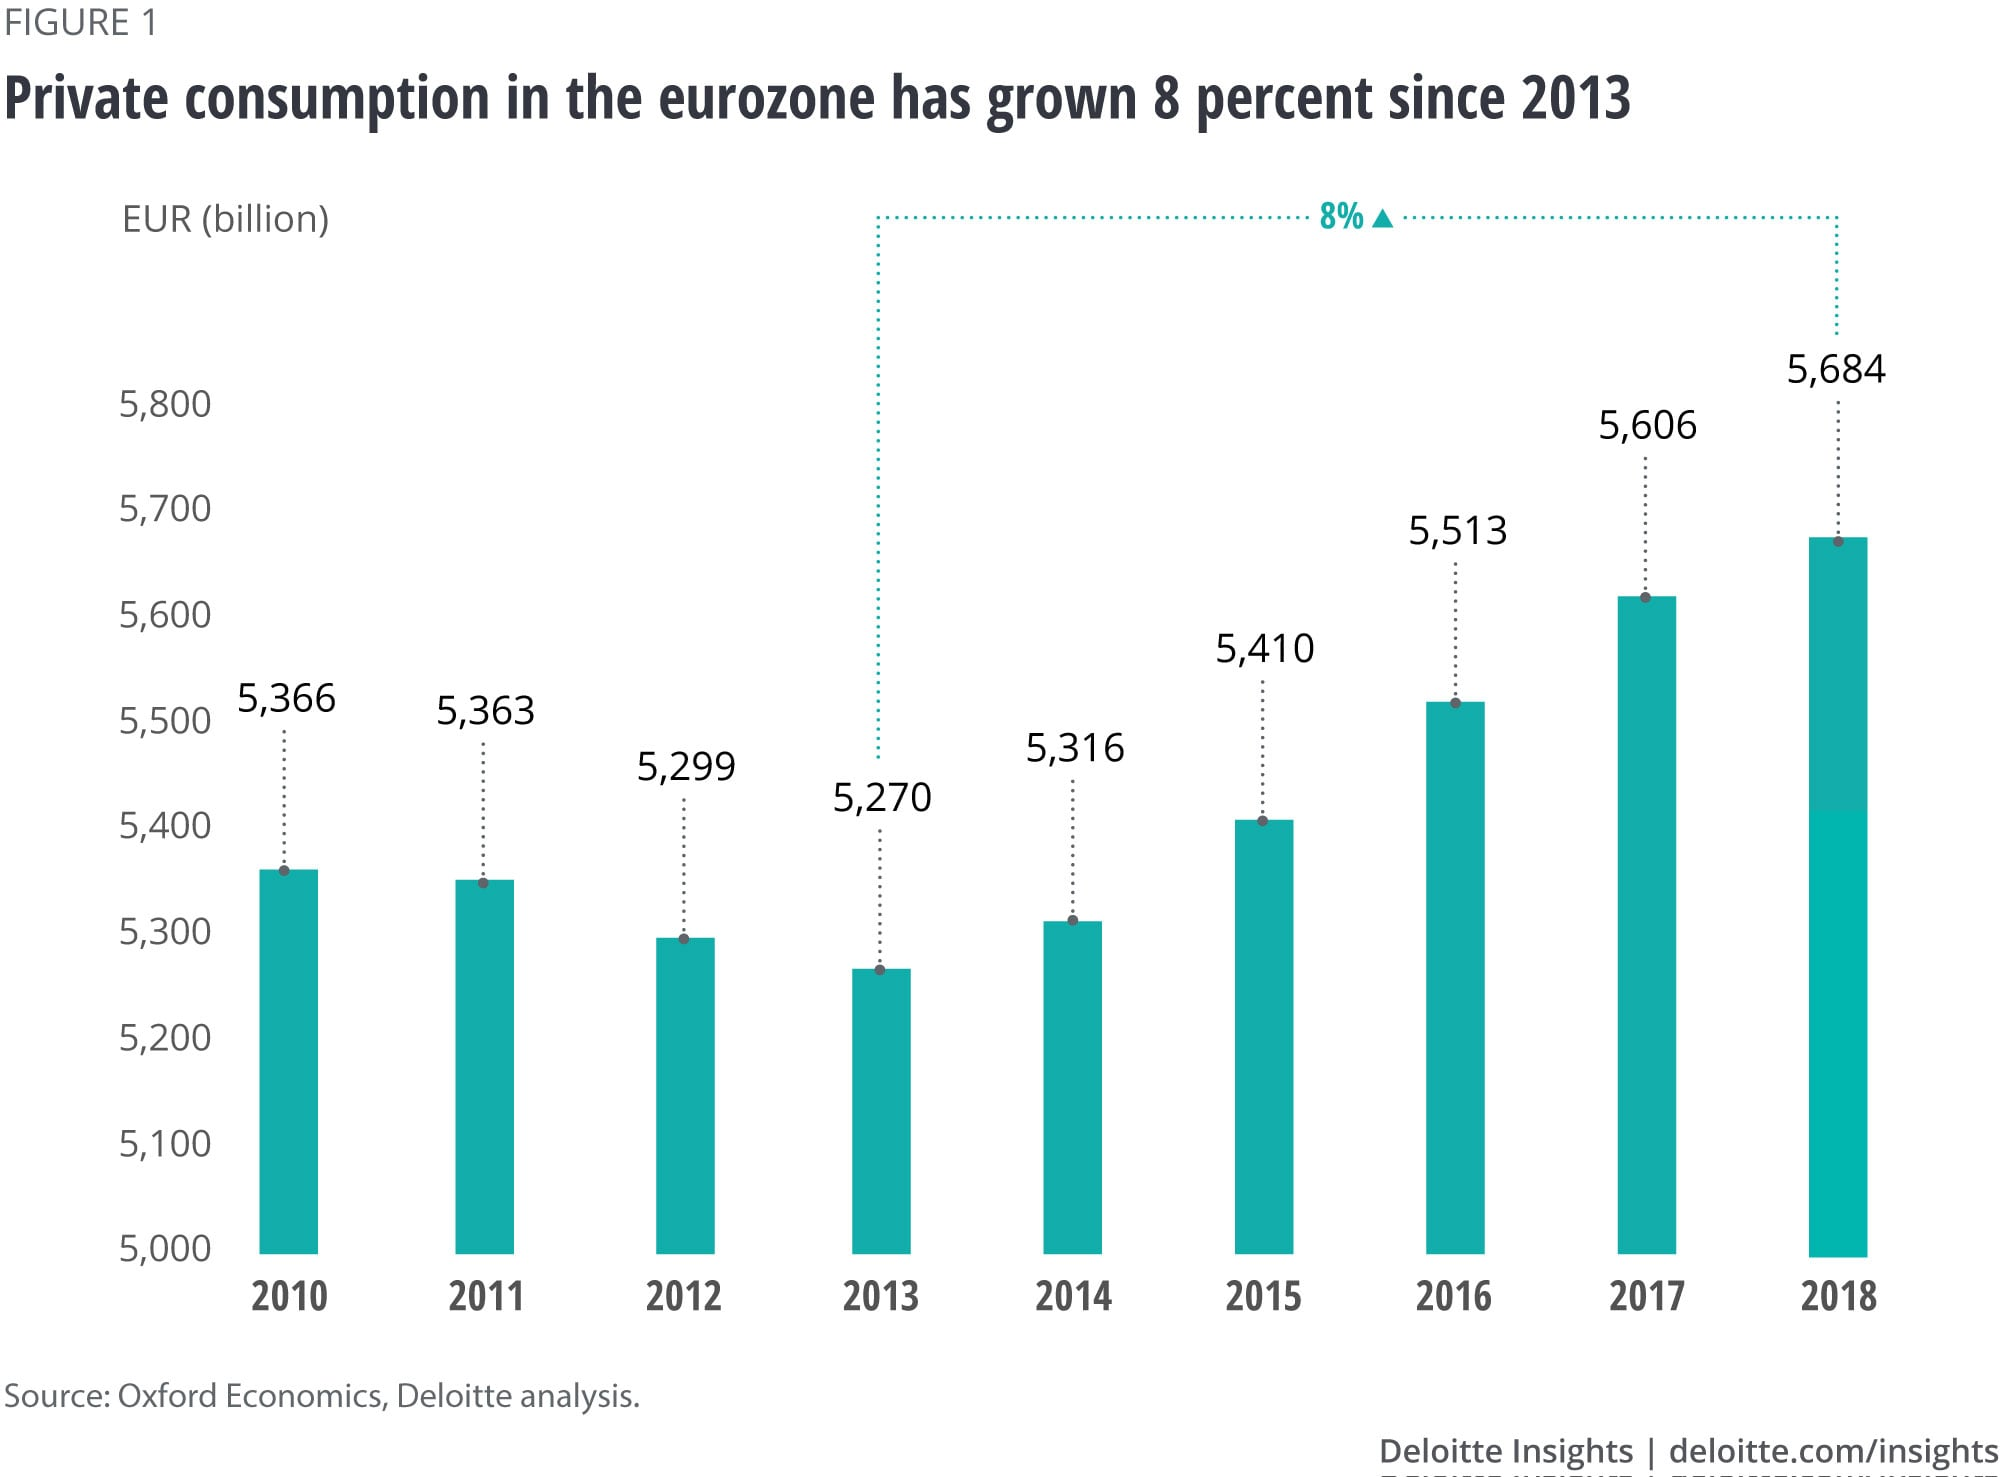 Private consumption in the eurozone has grown 8 percent since 2013